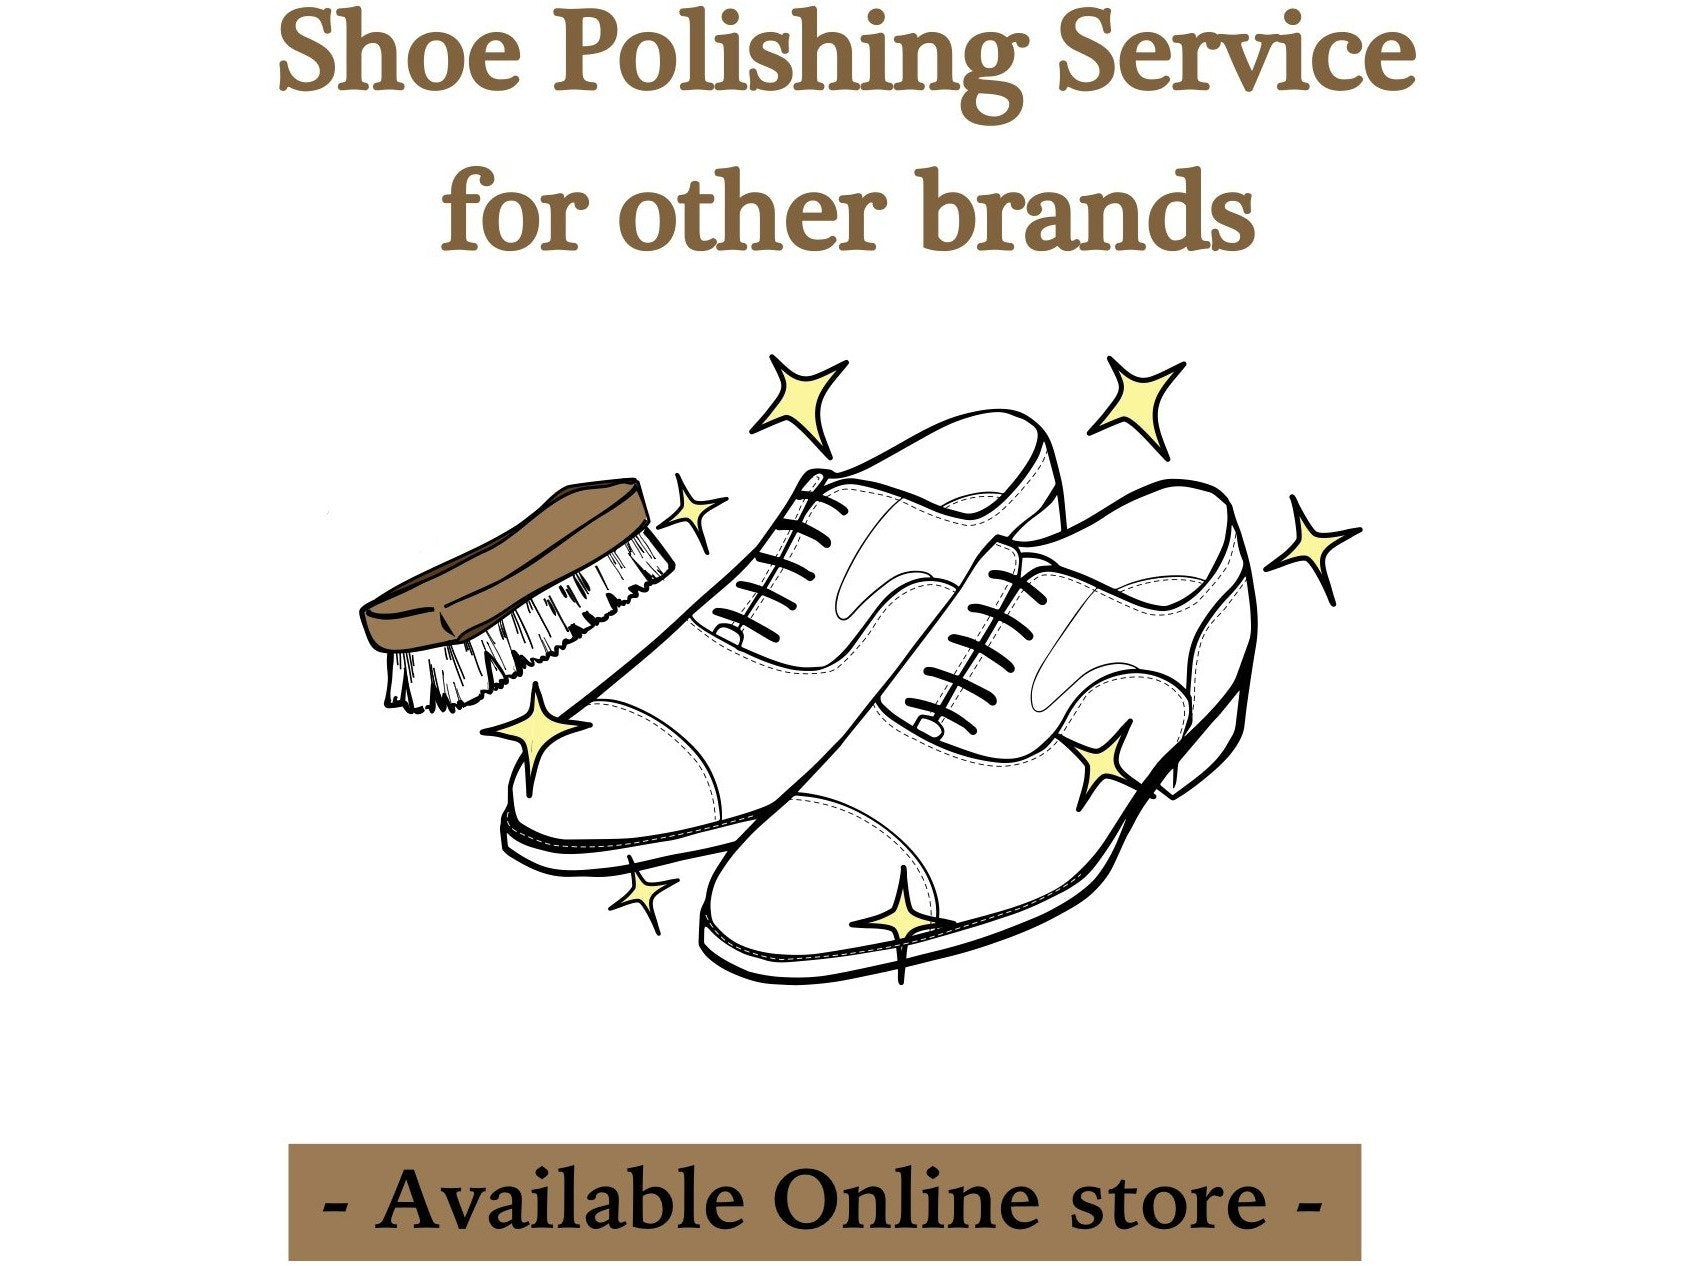 Shoe Polishing Service For Other Brands